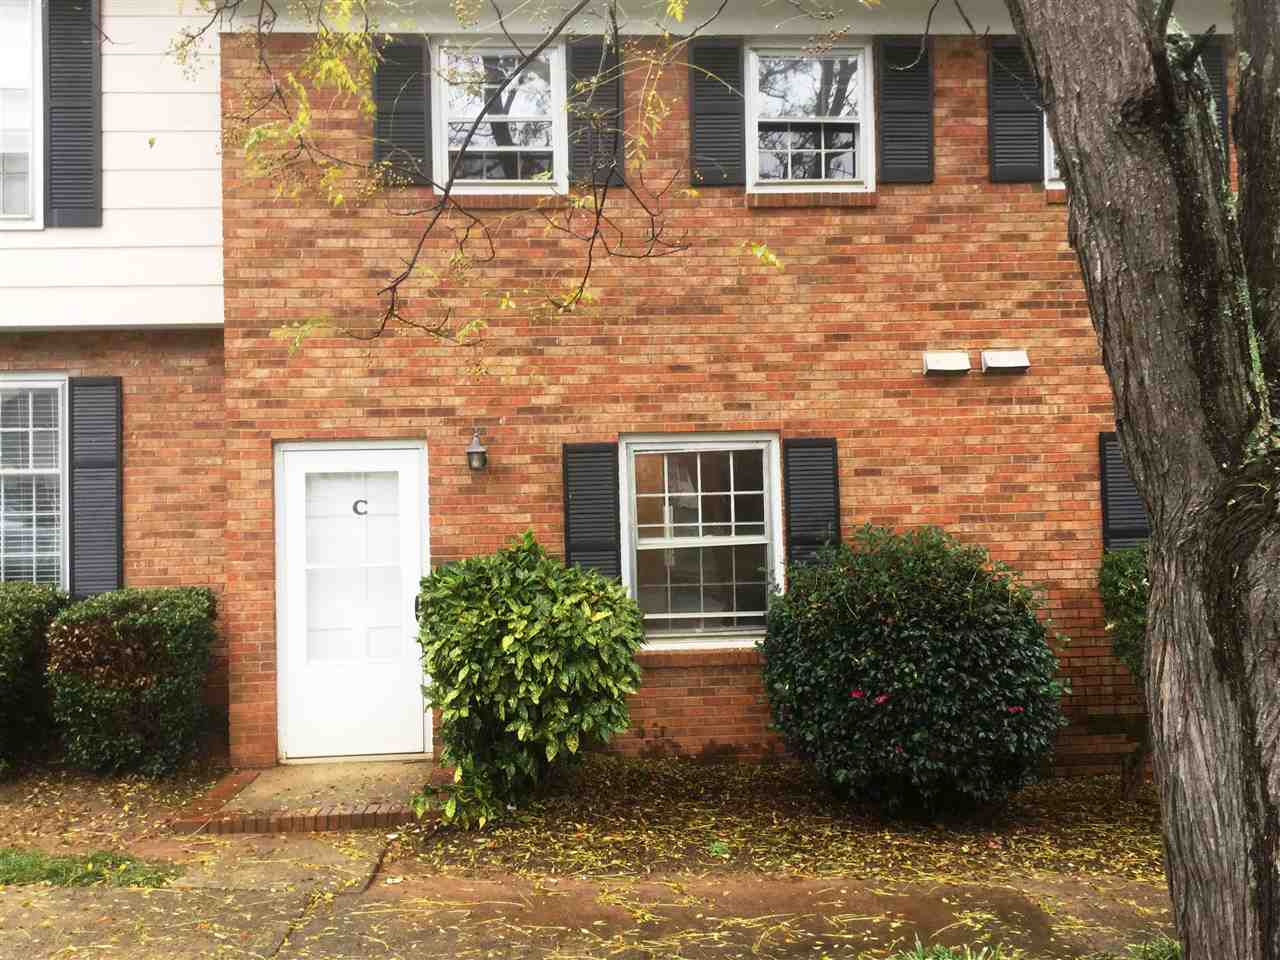 1792-c Ebenezer Rd, Rock Hill, South Carolina